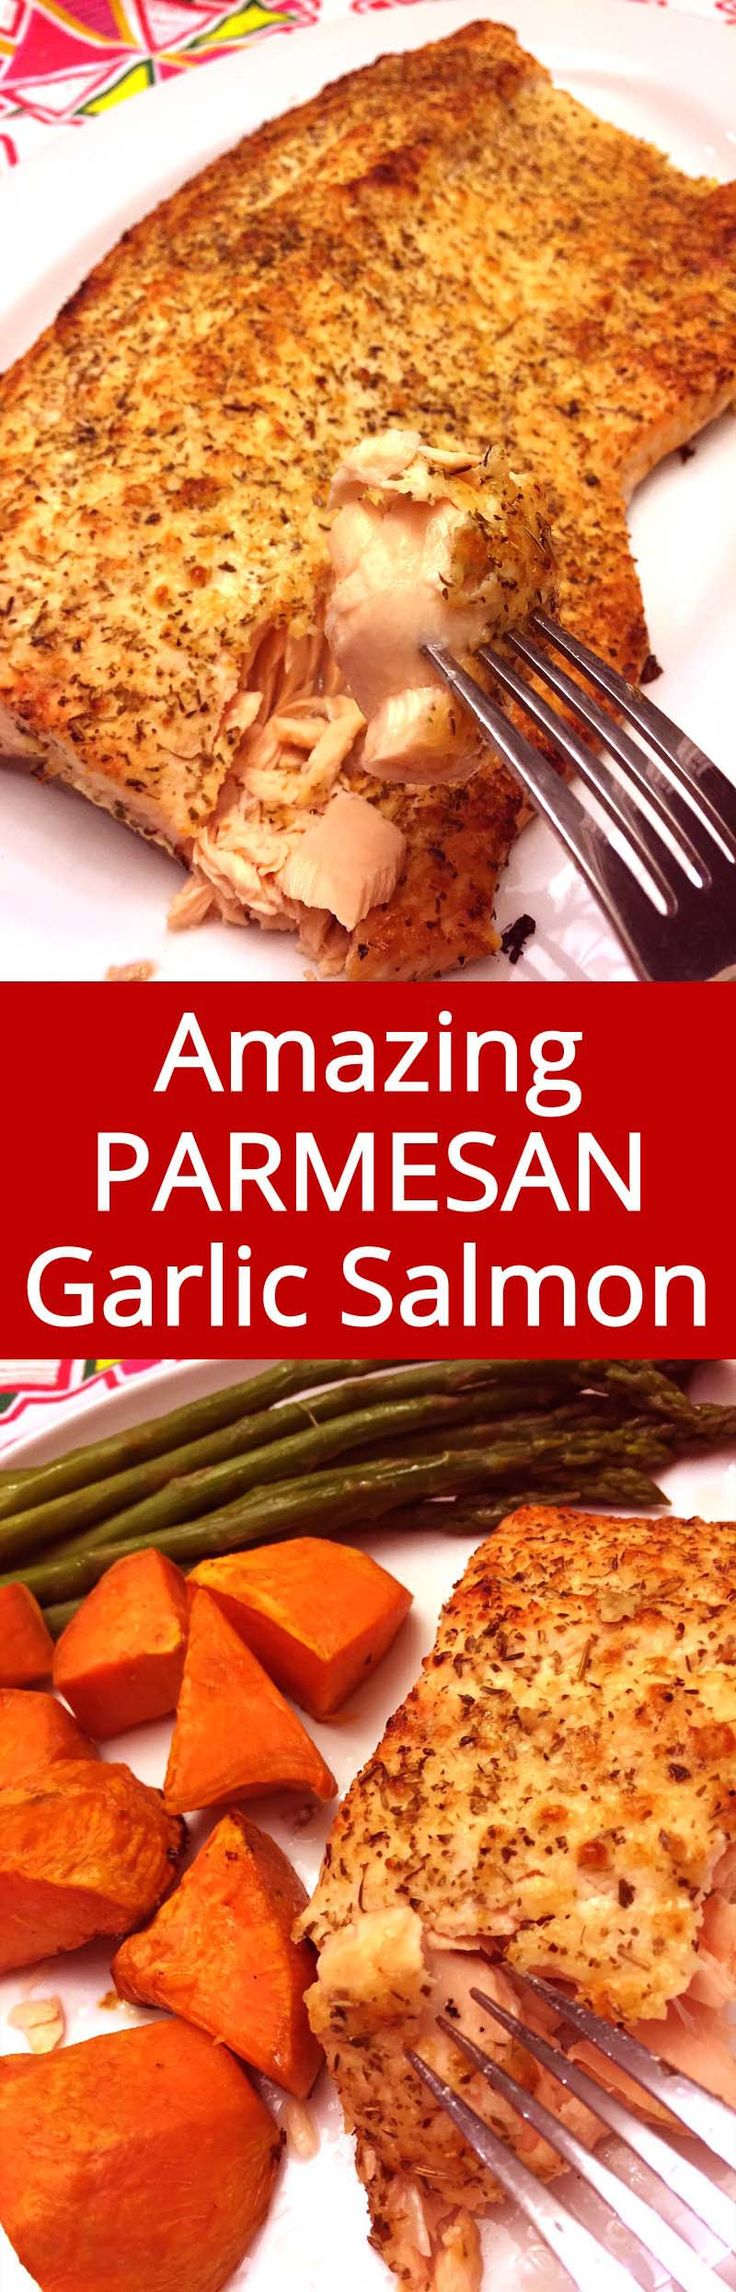 Crispy Parmesan crust on the outside, succulent salmon on the inside - this is my favorite salmon recipe ever! | MelanieCooks.com